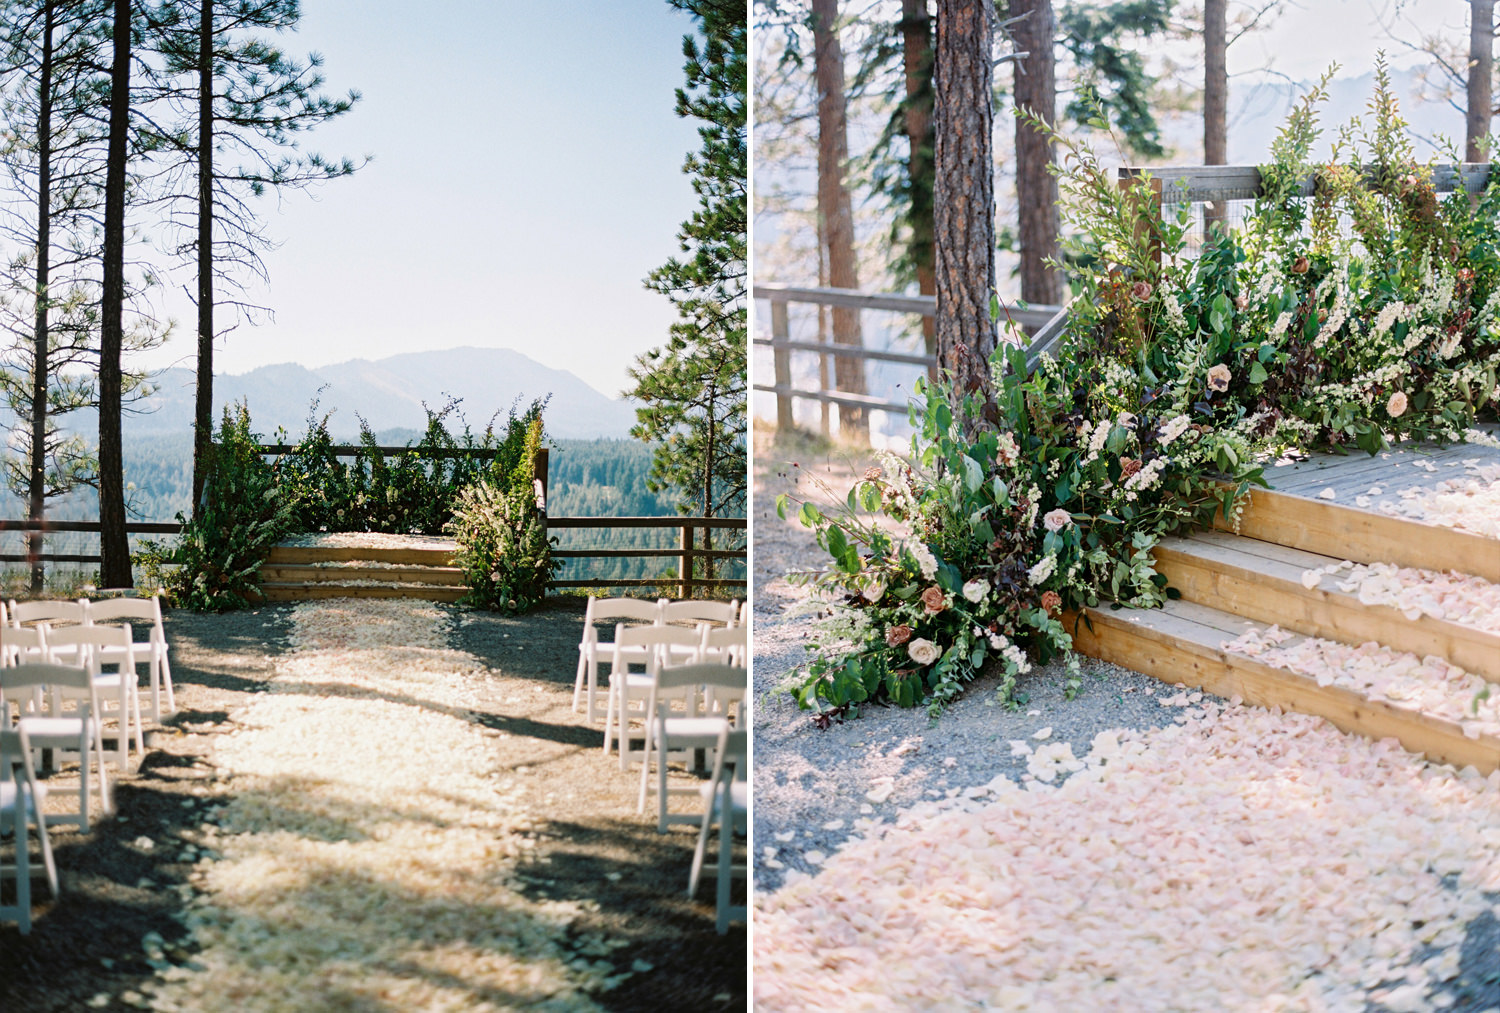 264-bright-coral-wedding-with-sinclair-and-moore-at-suncadia-resort.jpg